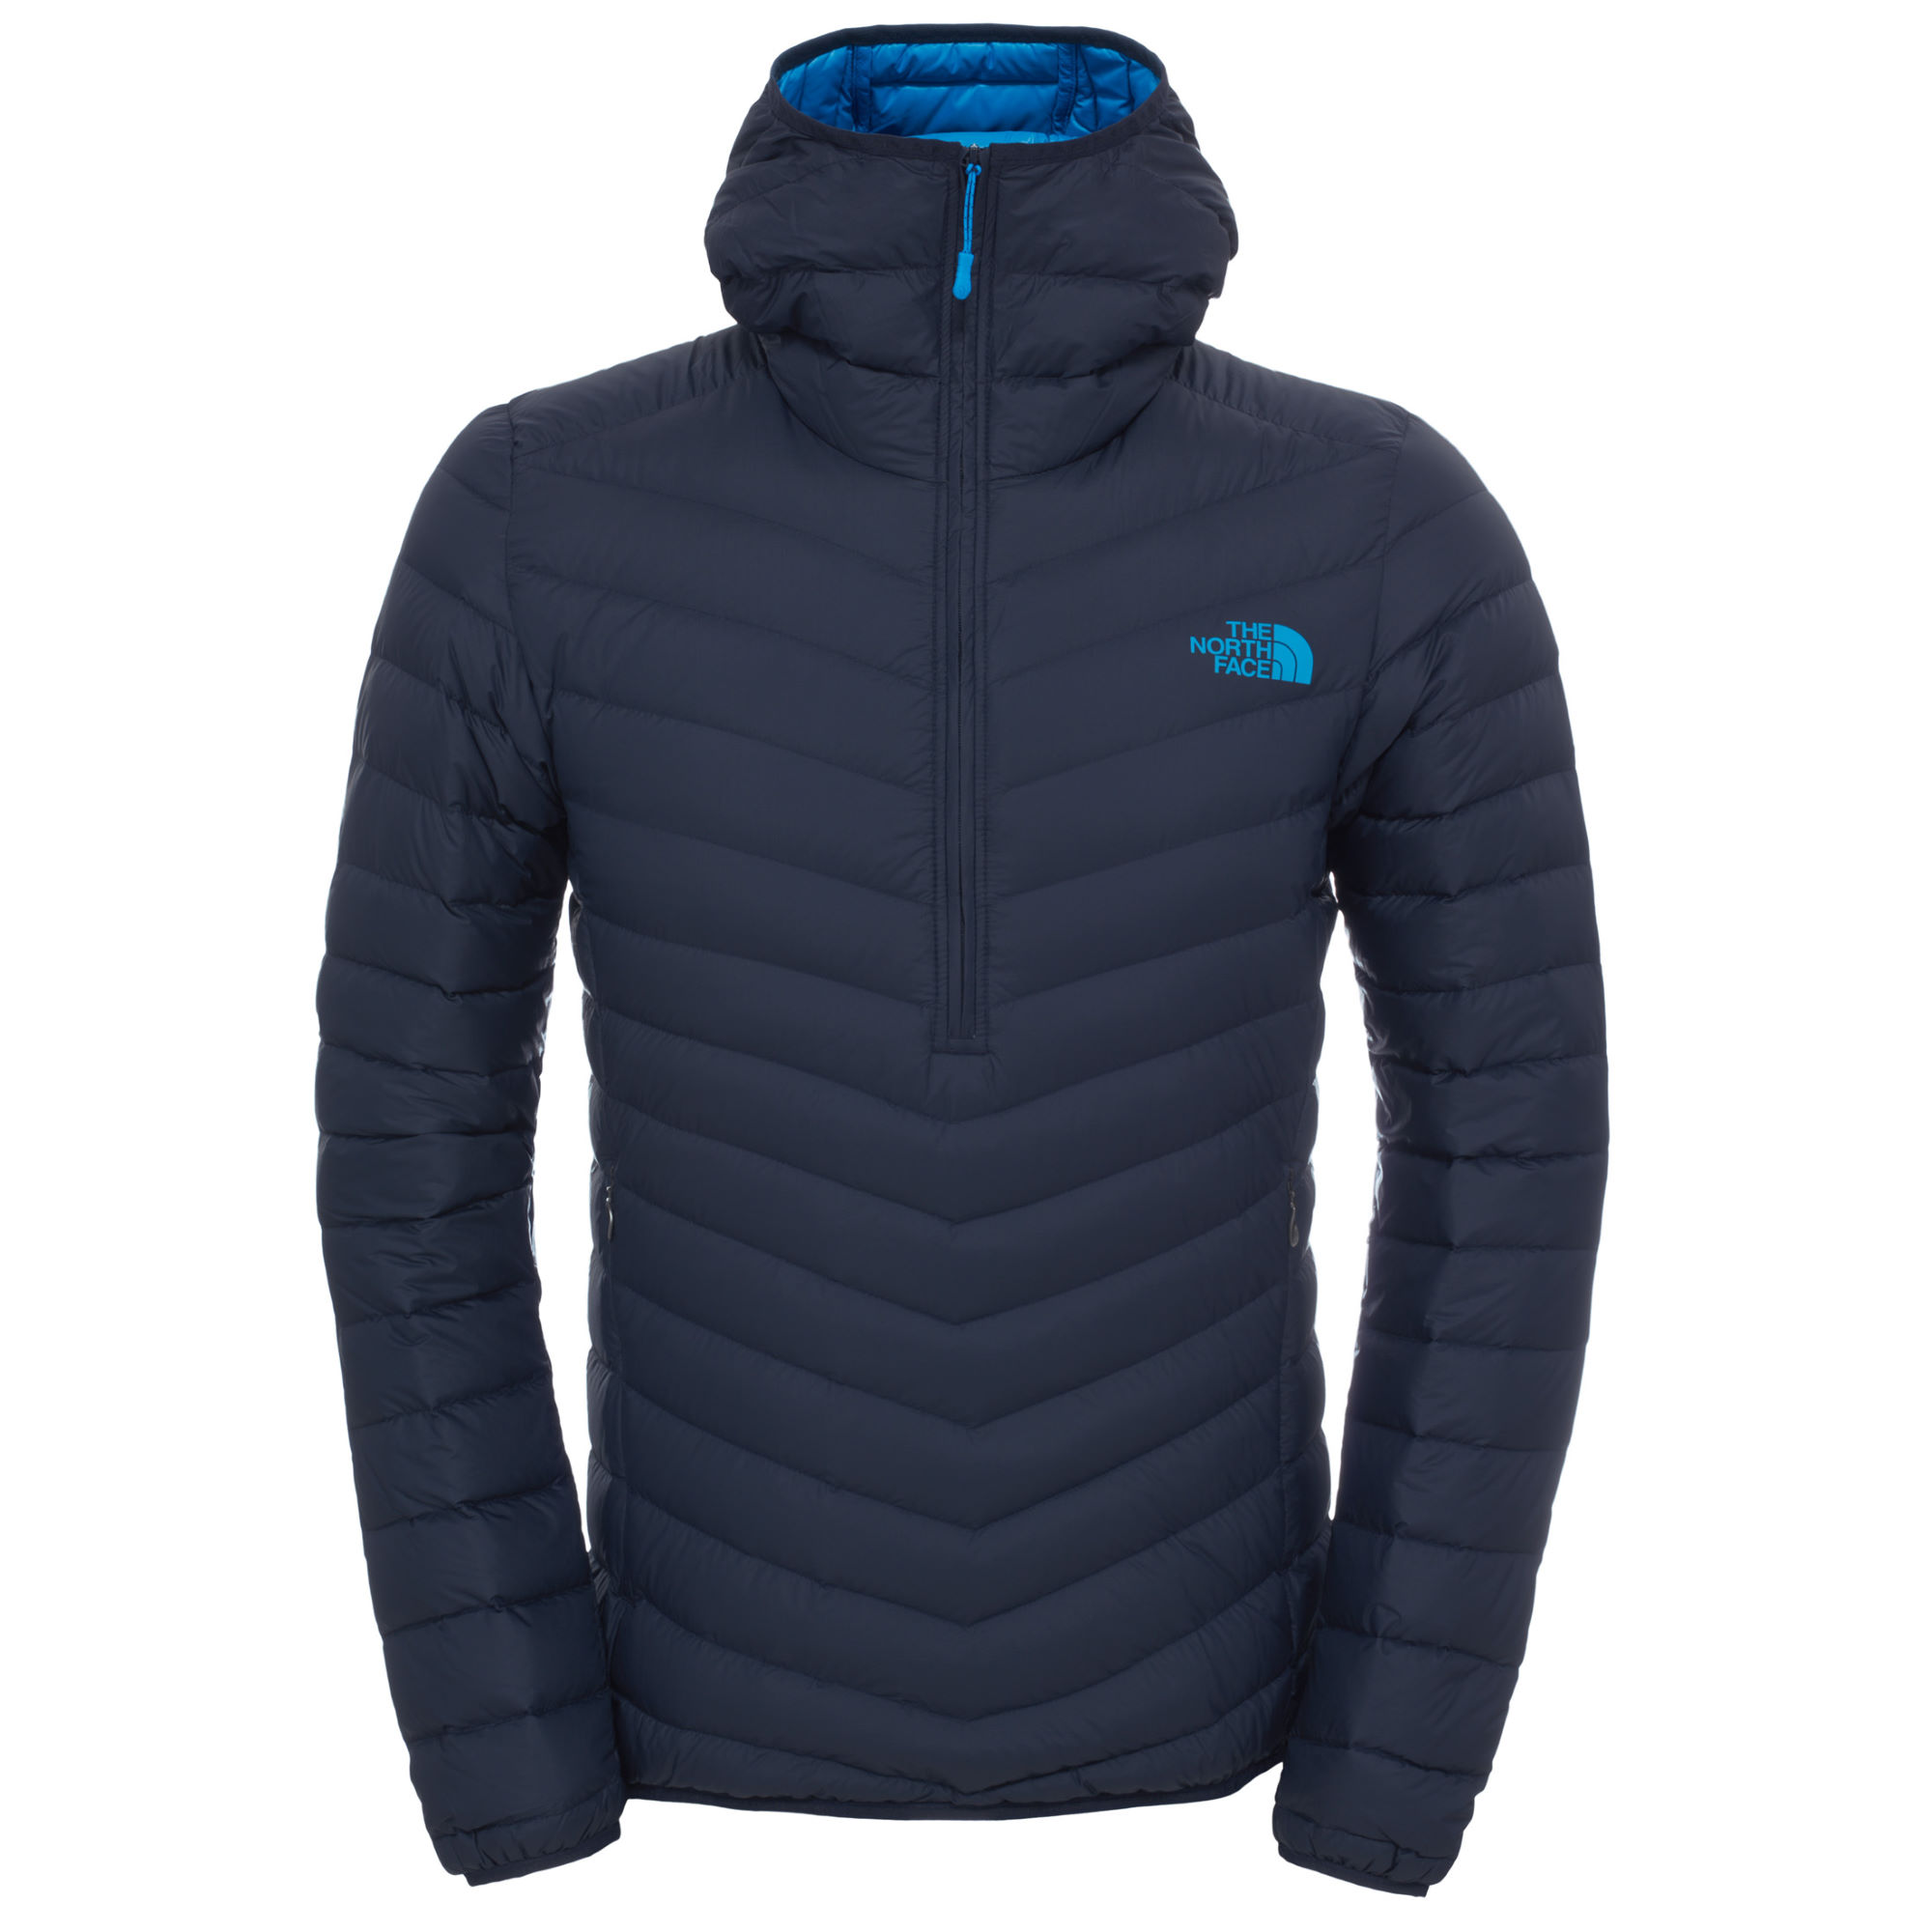 the north face Shop the north face on sale at 6pm get the best styles up to 70% off msrp.